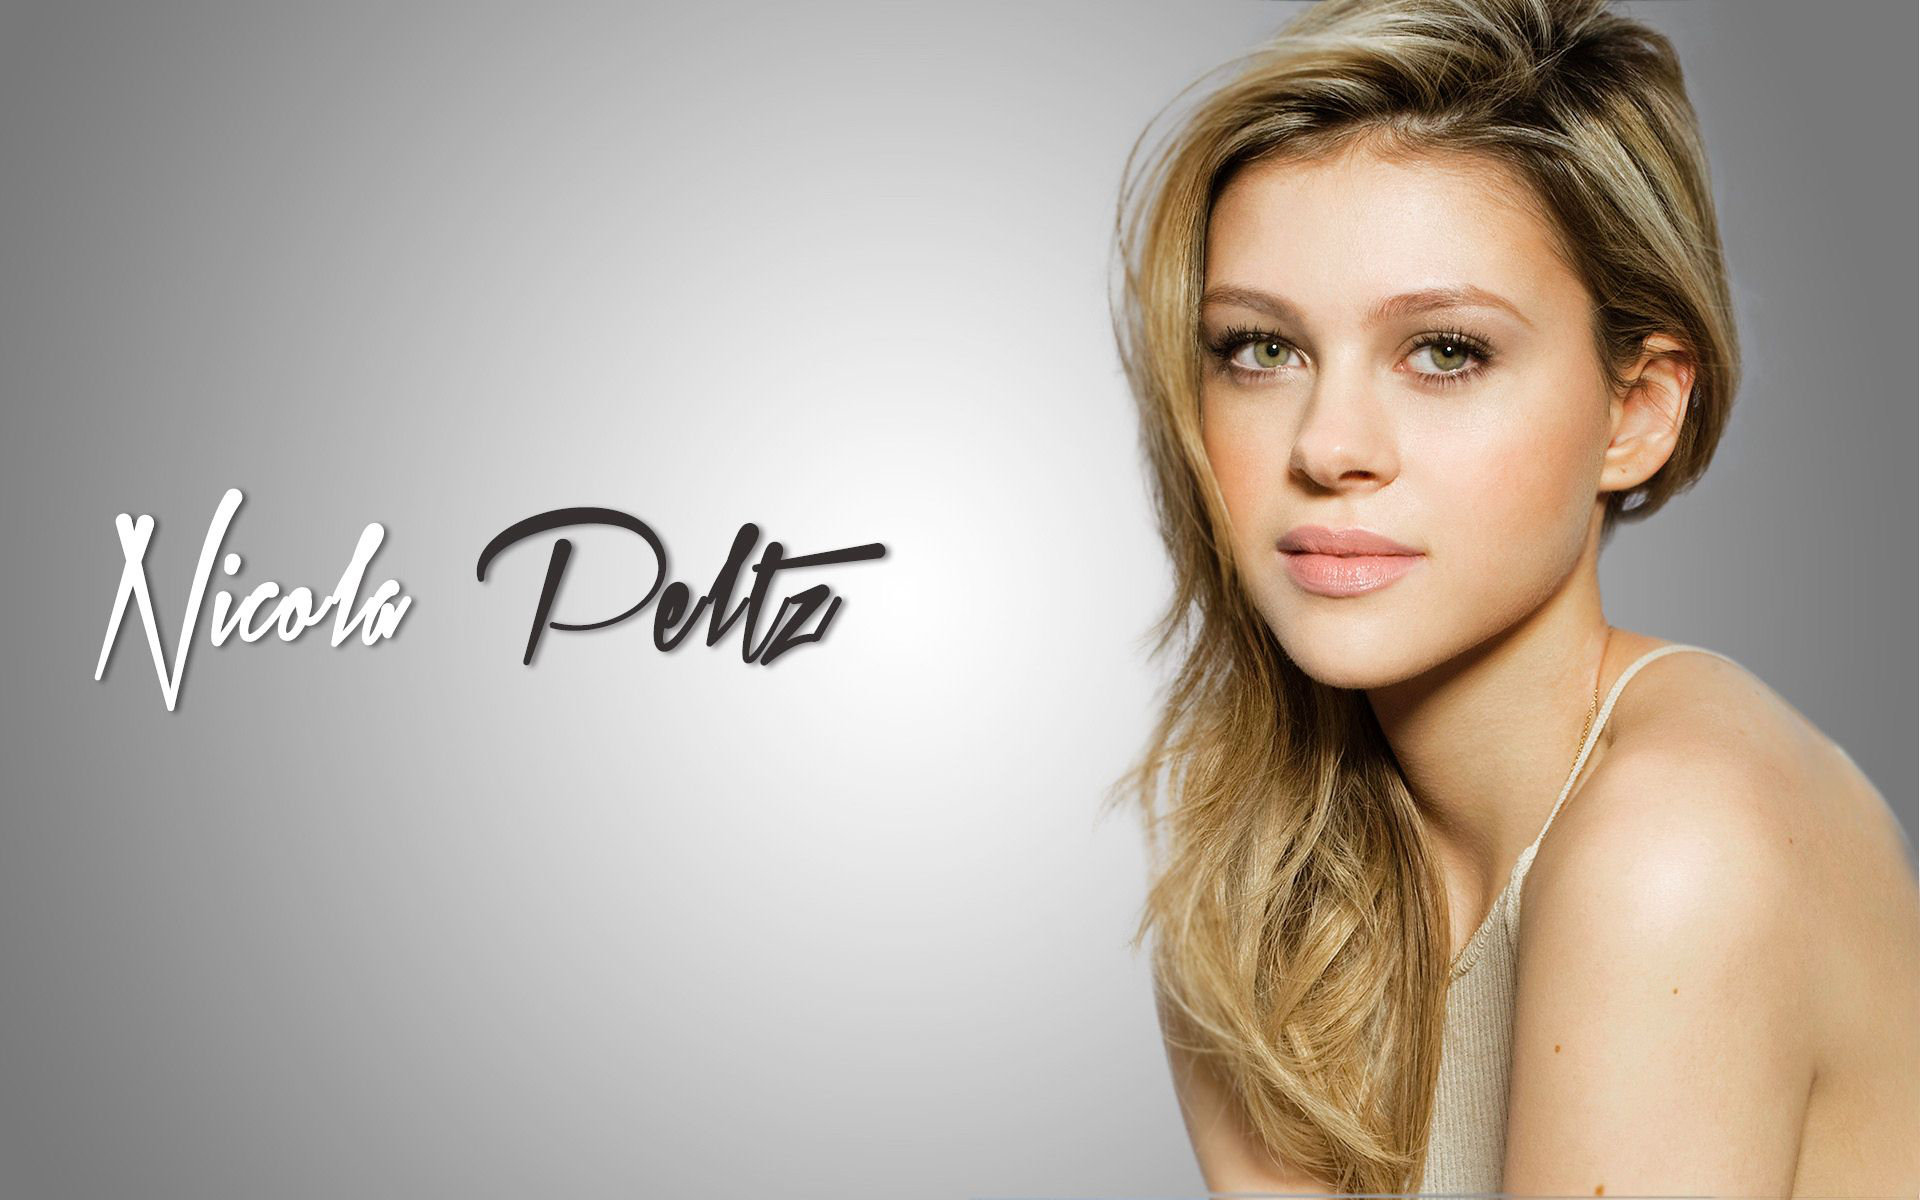 Awesome Nicola Peltz free background ID:130526 for hd 1920x1200 computer